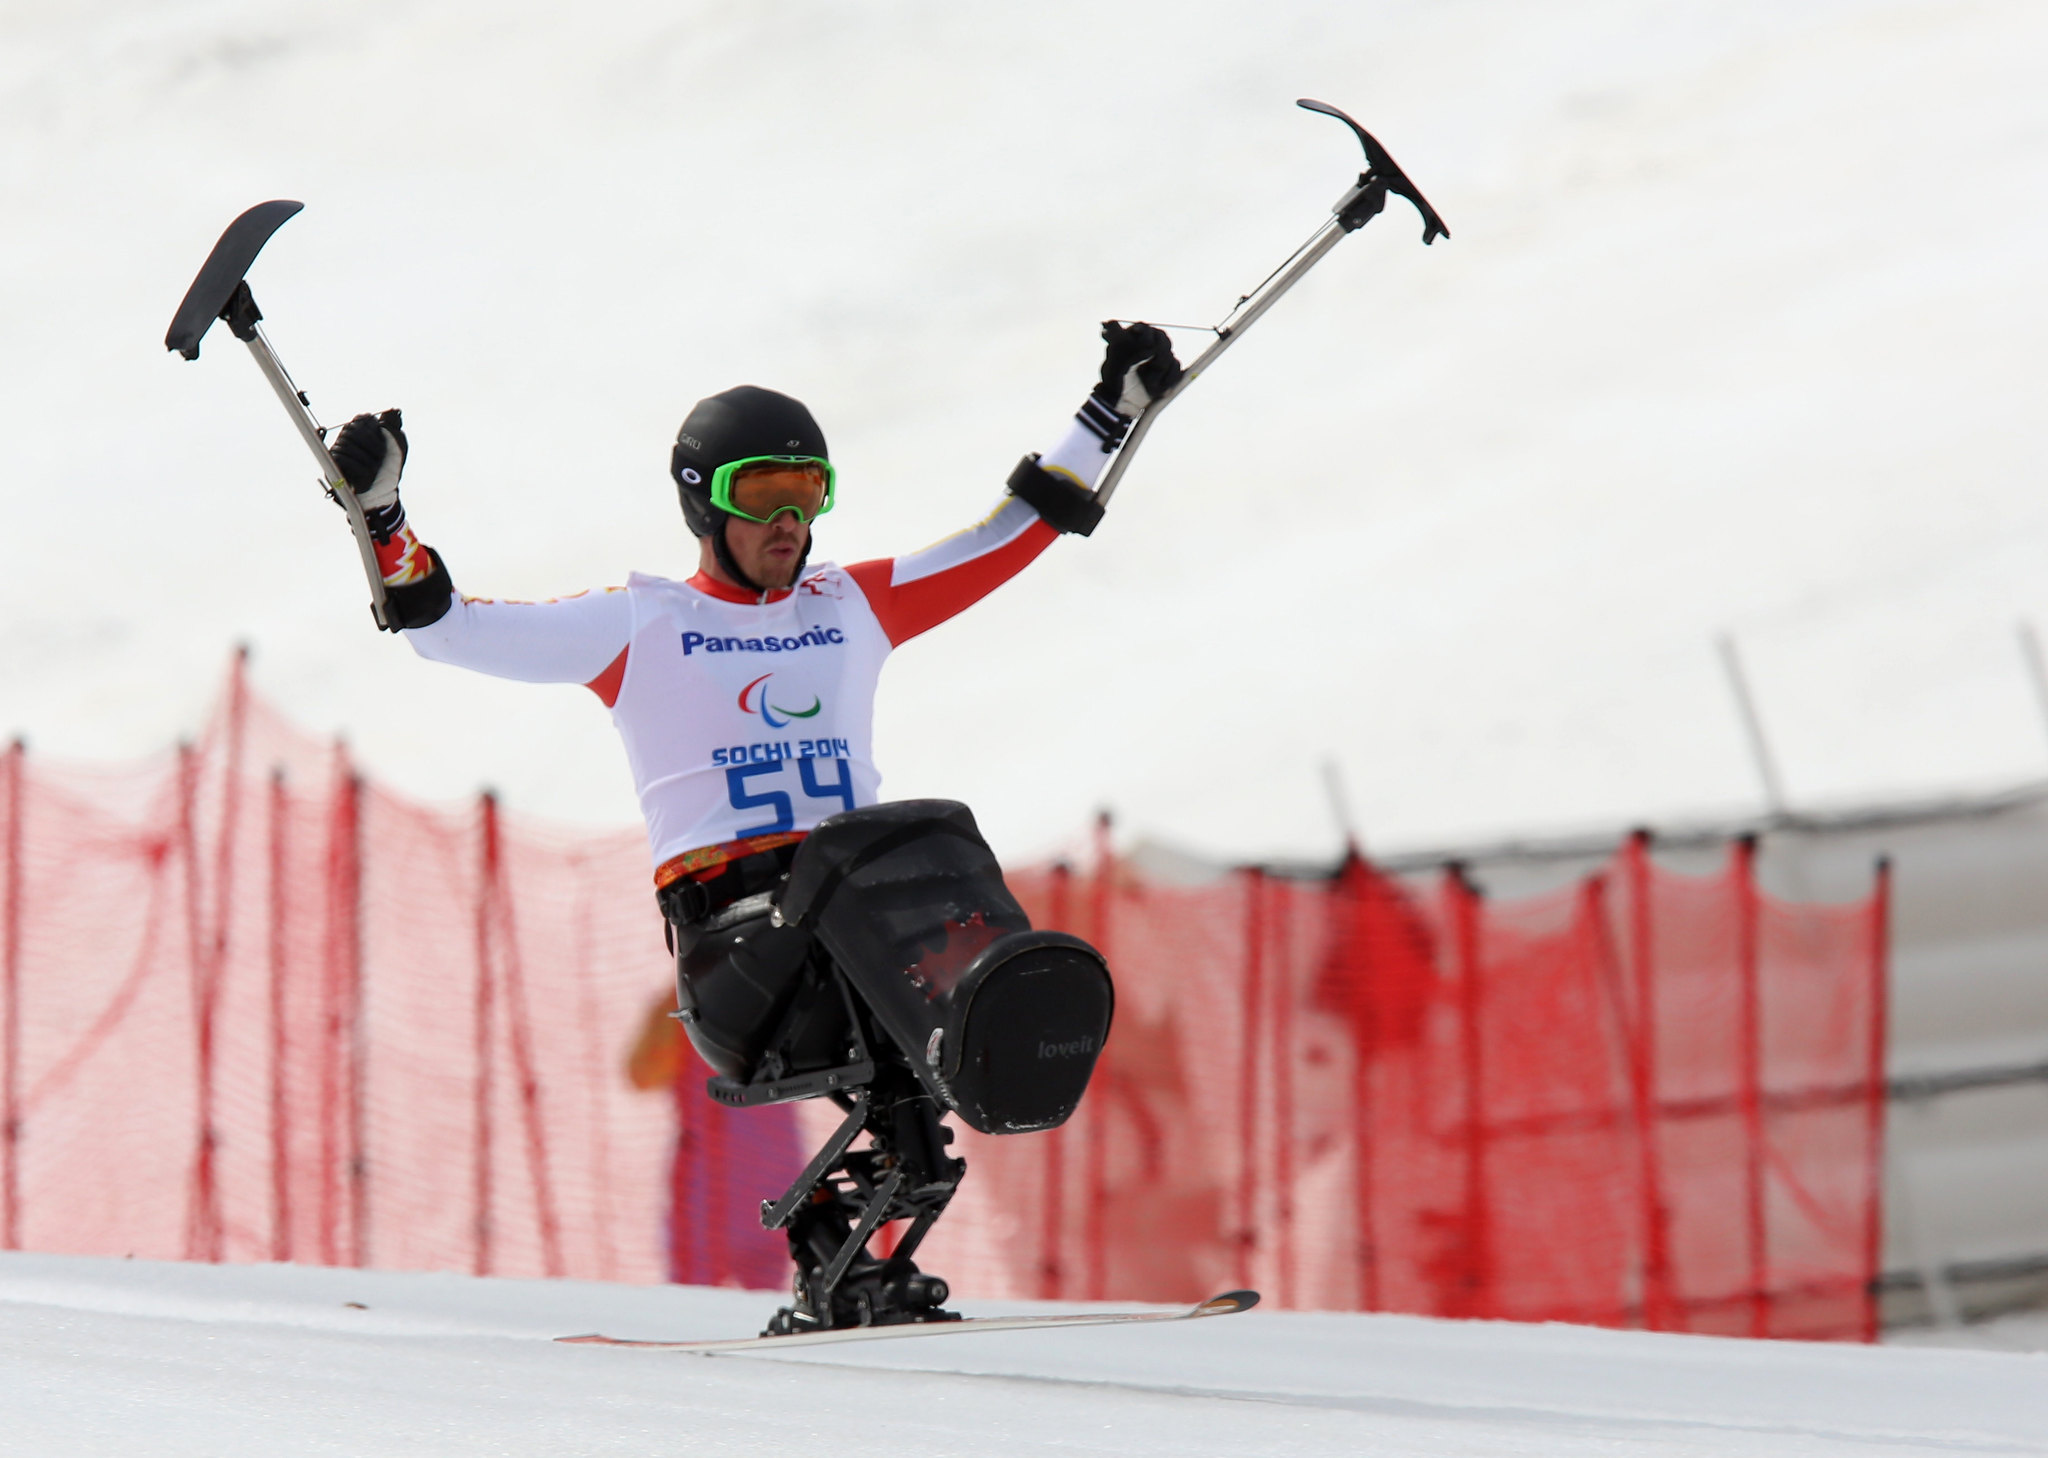 Josh Dueck with a silver medal performance in the Downhill in Sochi, RUS at the Paralympic Winter Games